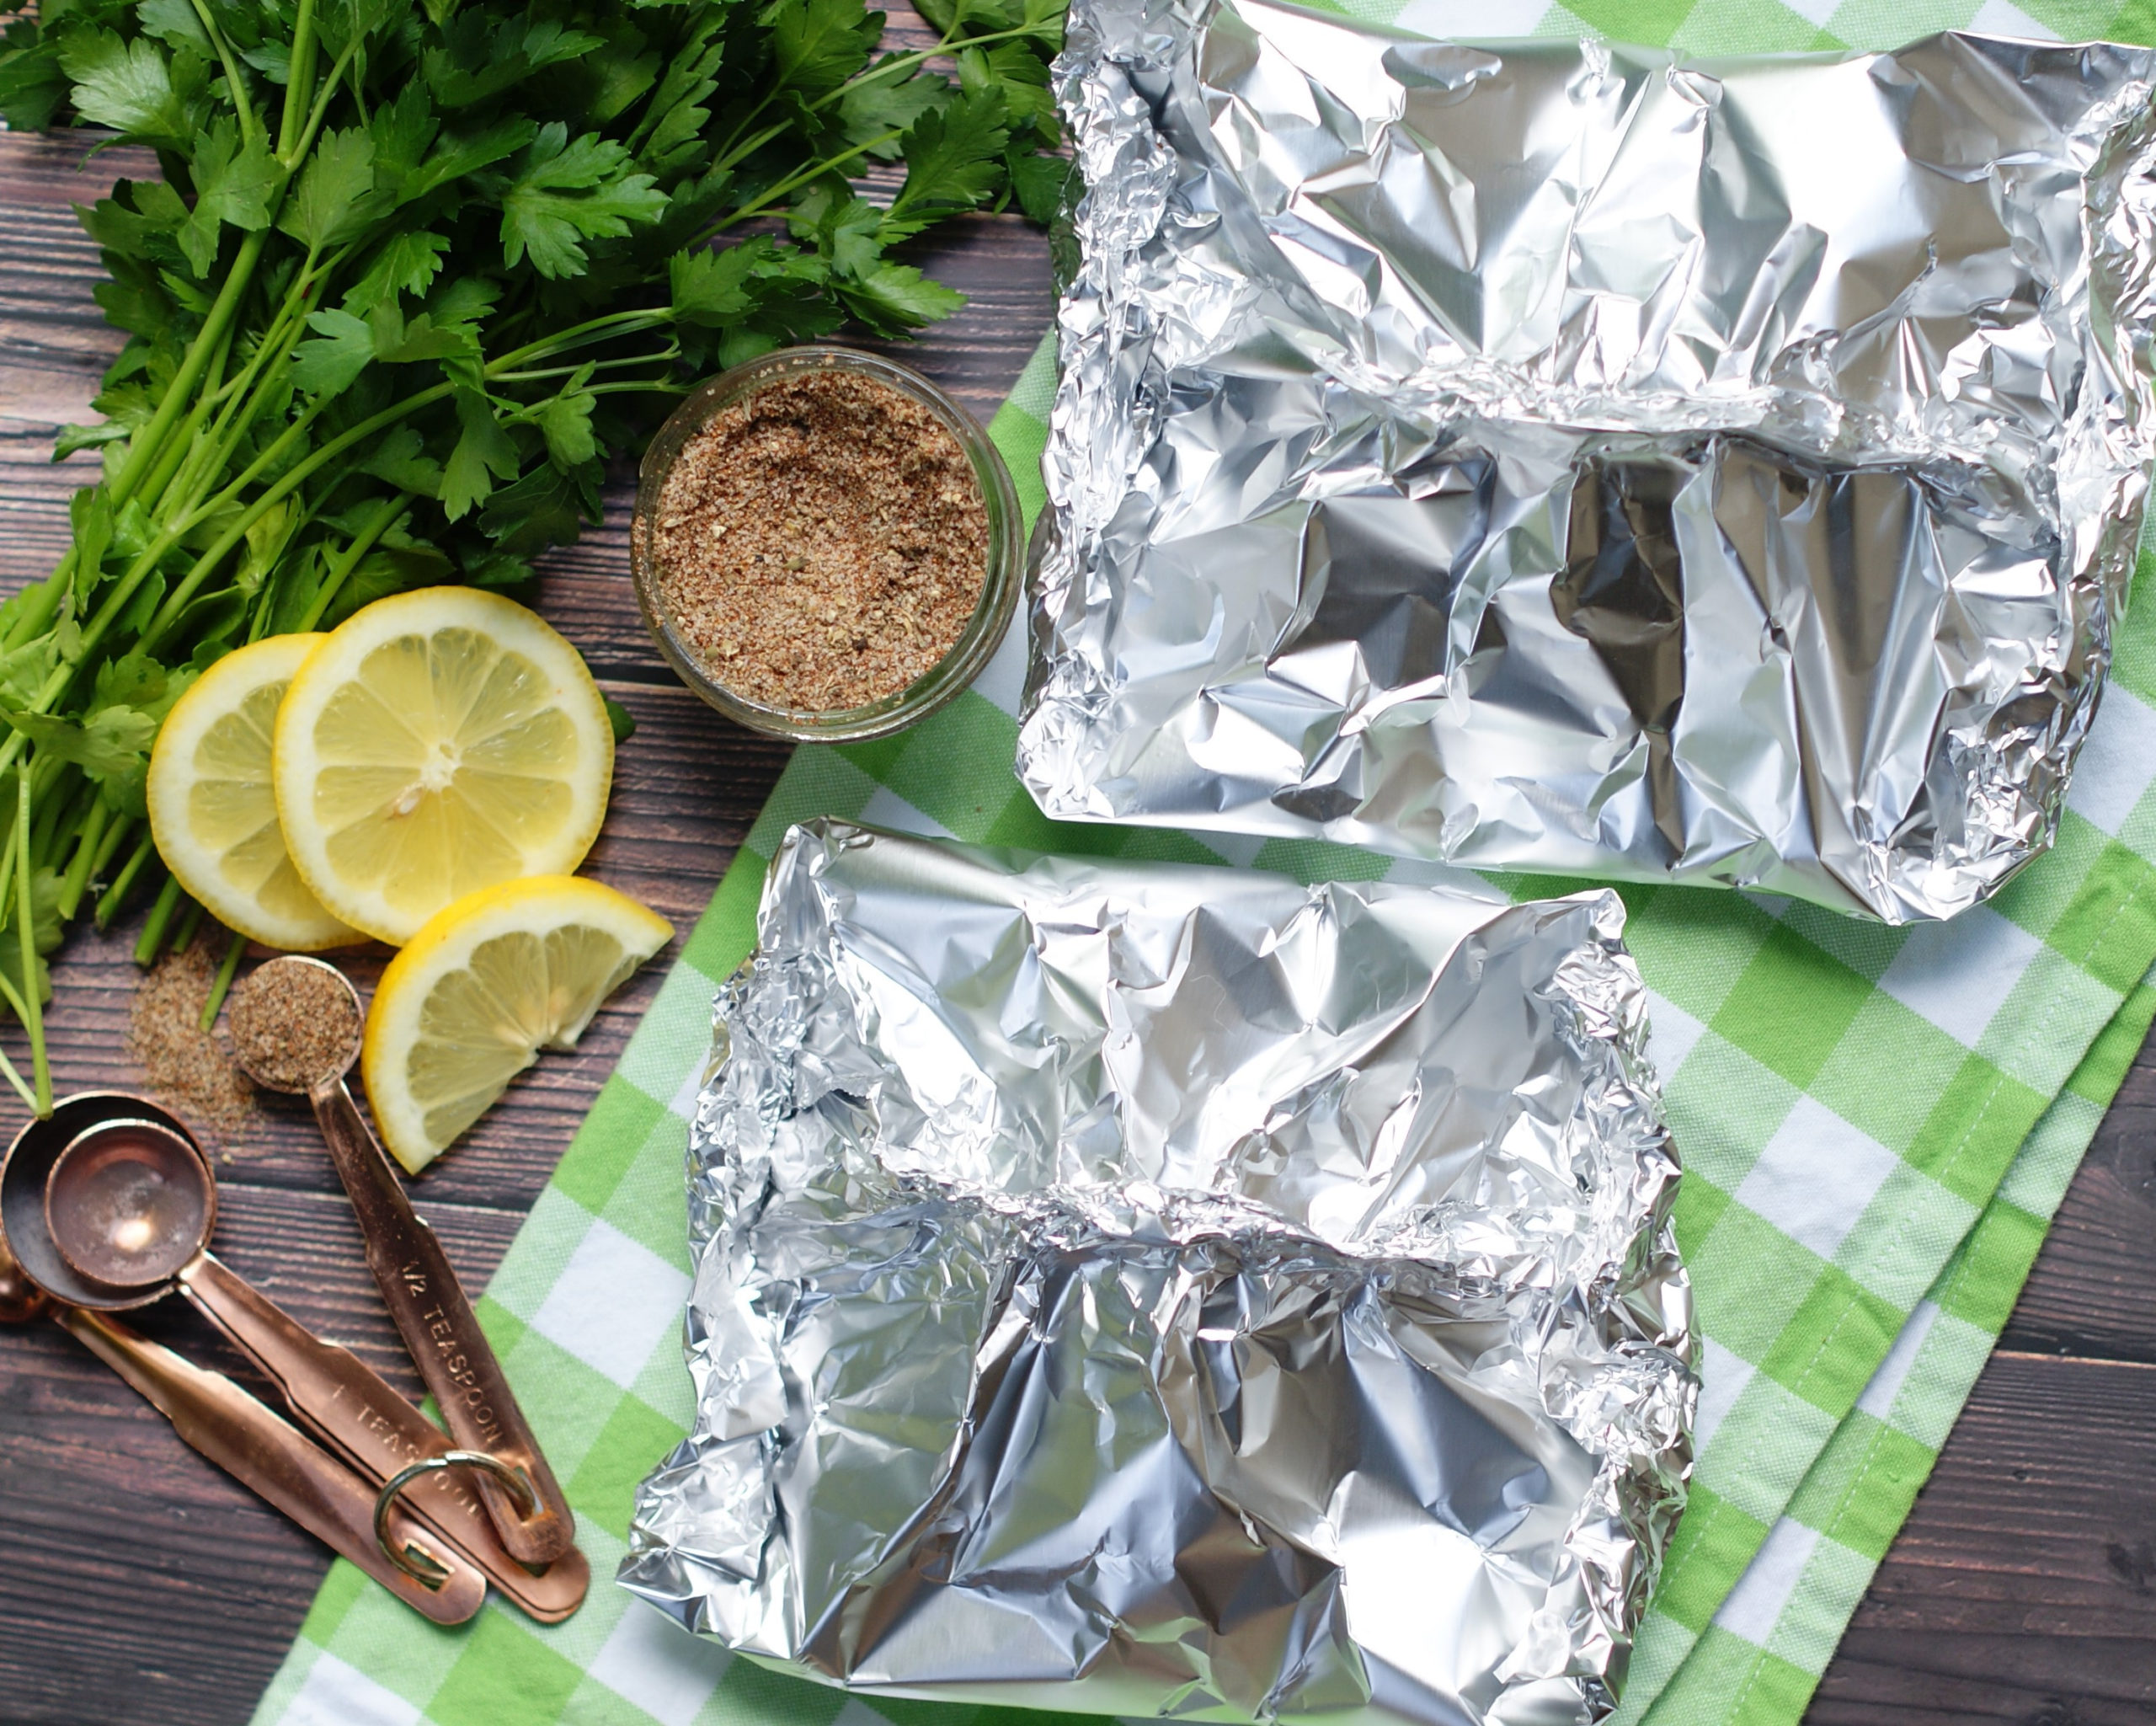 Process to make Easy Cajun/ Creole Spicy Shrimp Foil Packets for the oven or grill